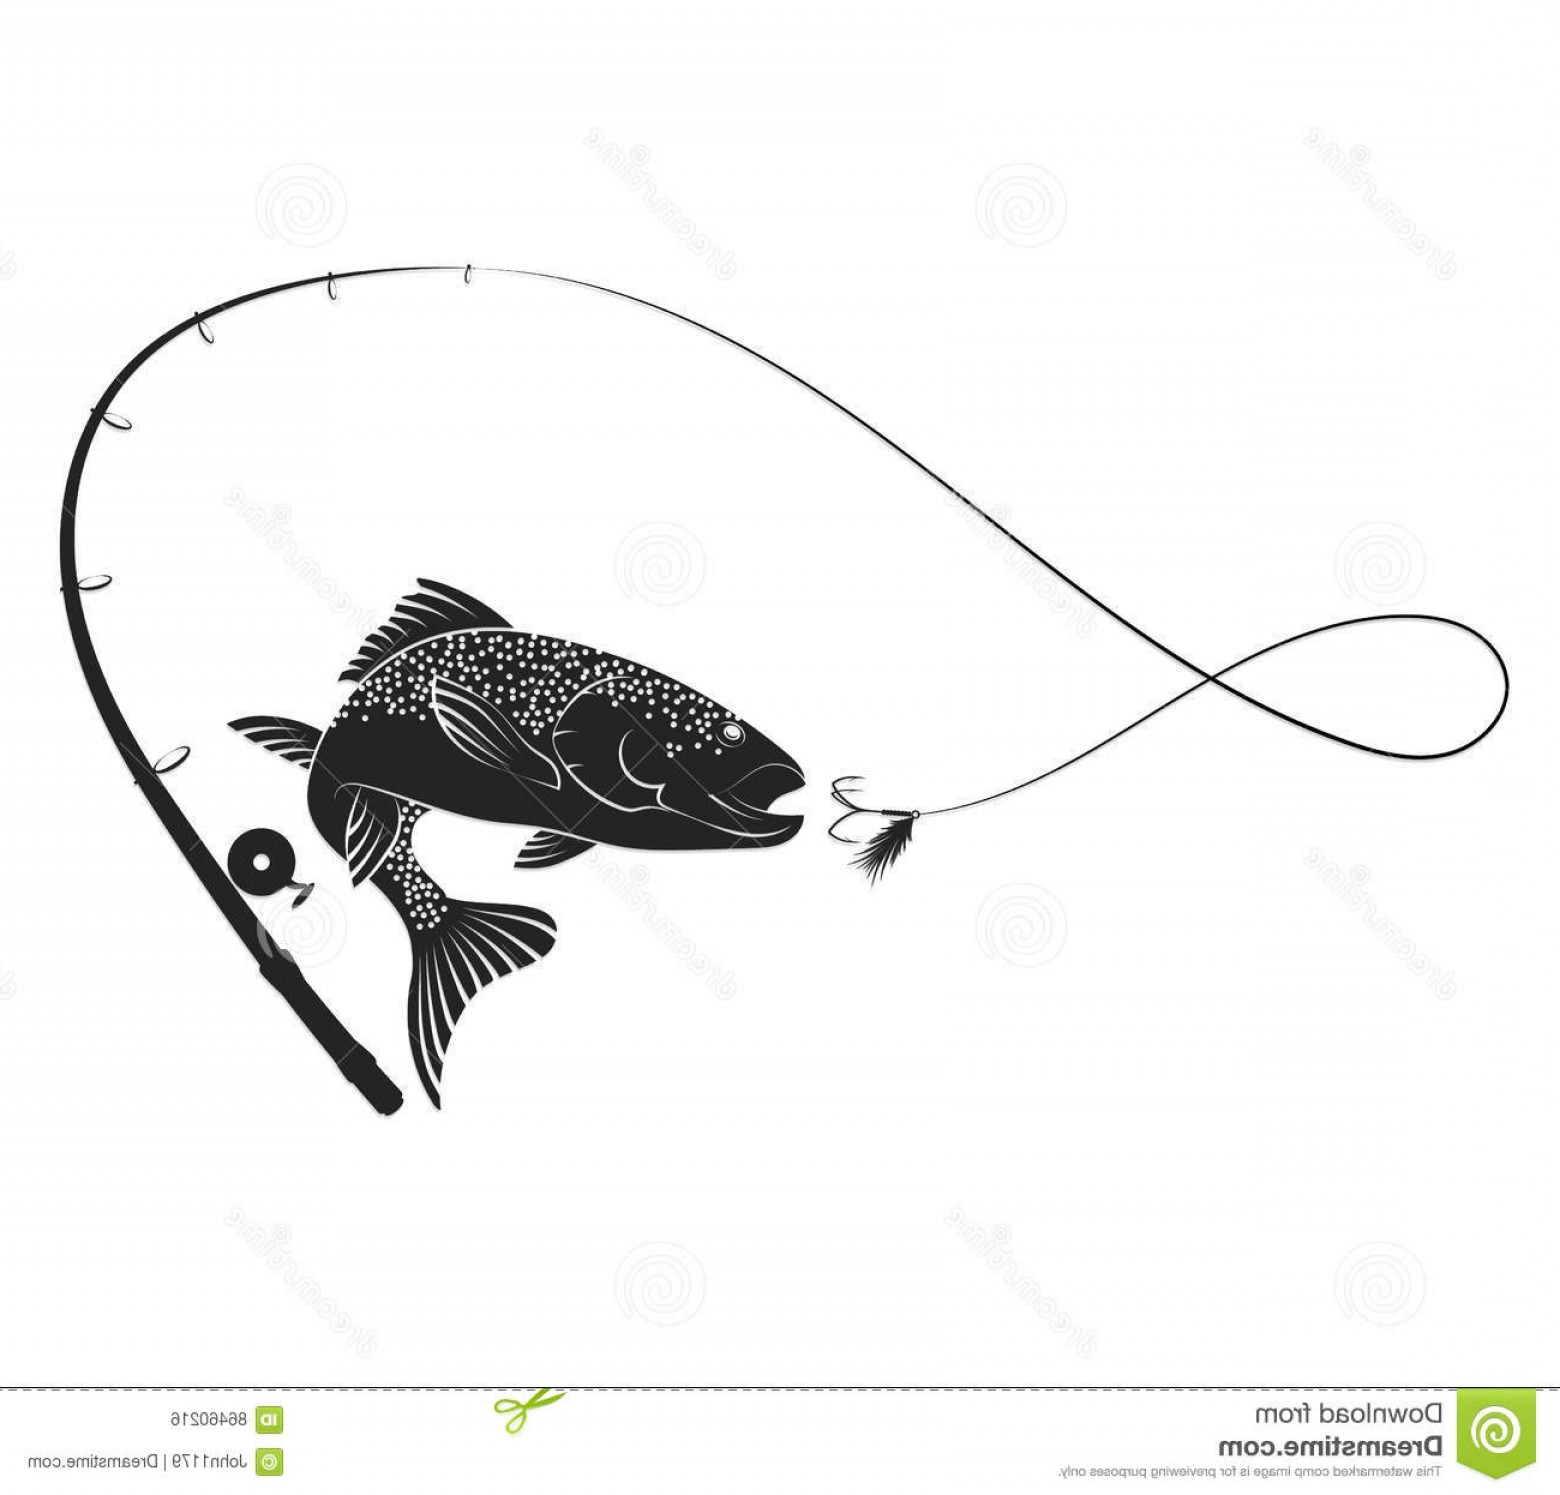 Stock illustration fish rod. Free clipart of fishing poles and lures